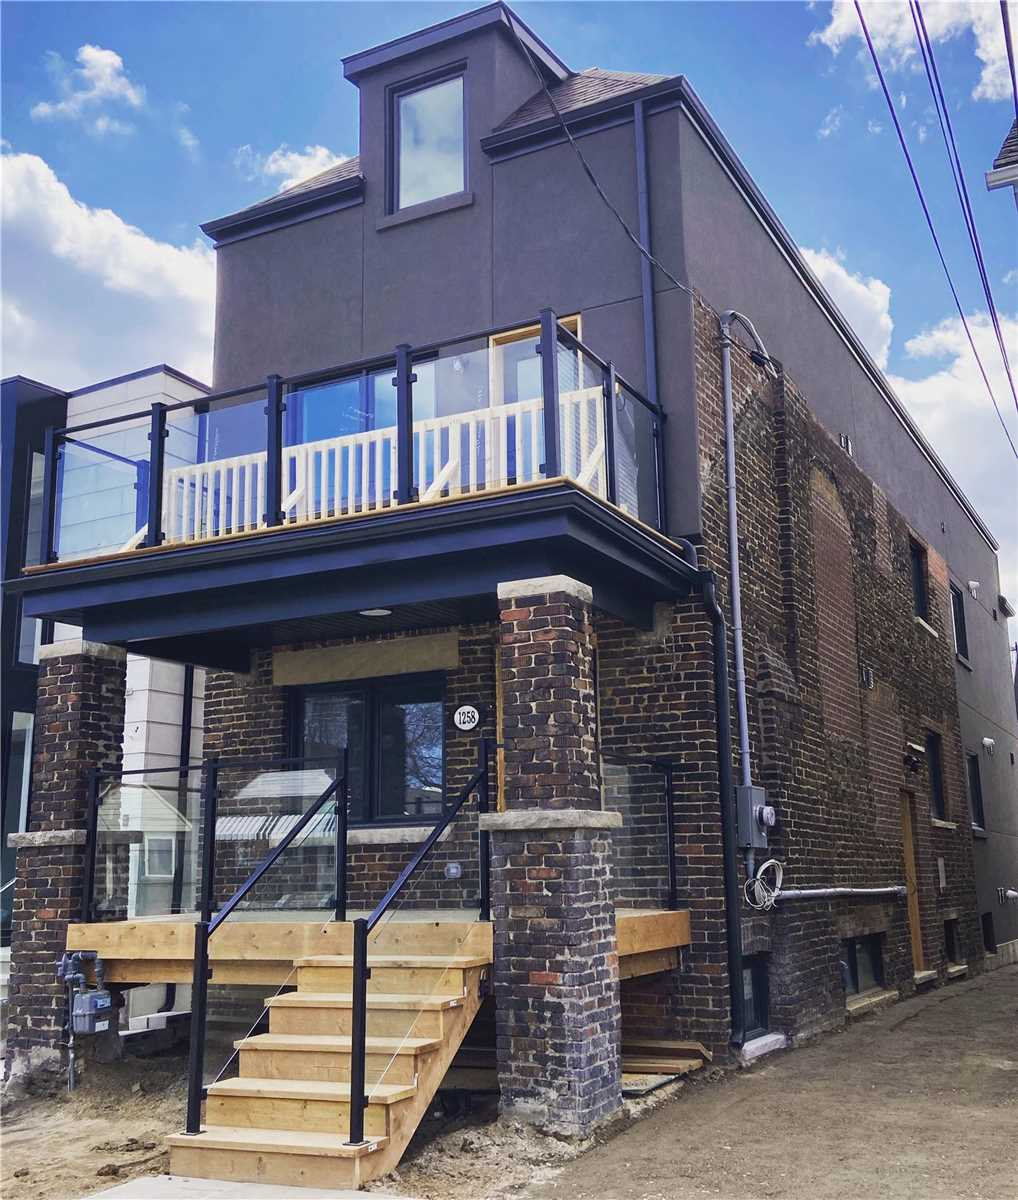 House For Rent Unit 2, 1258 Broadview Ave, M4K 2T4, Broadview North, Toronto